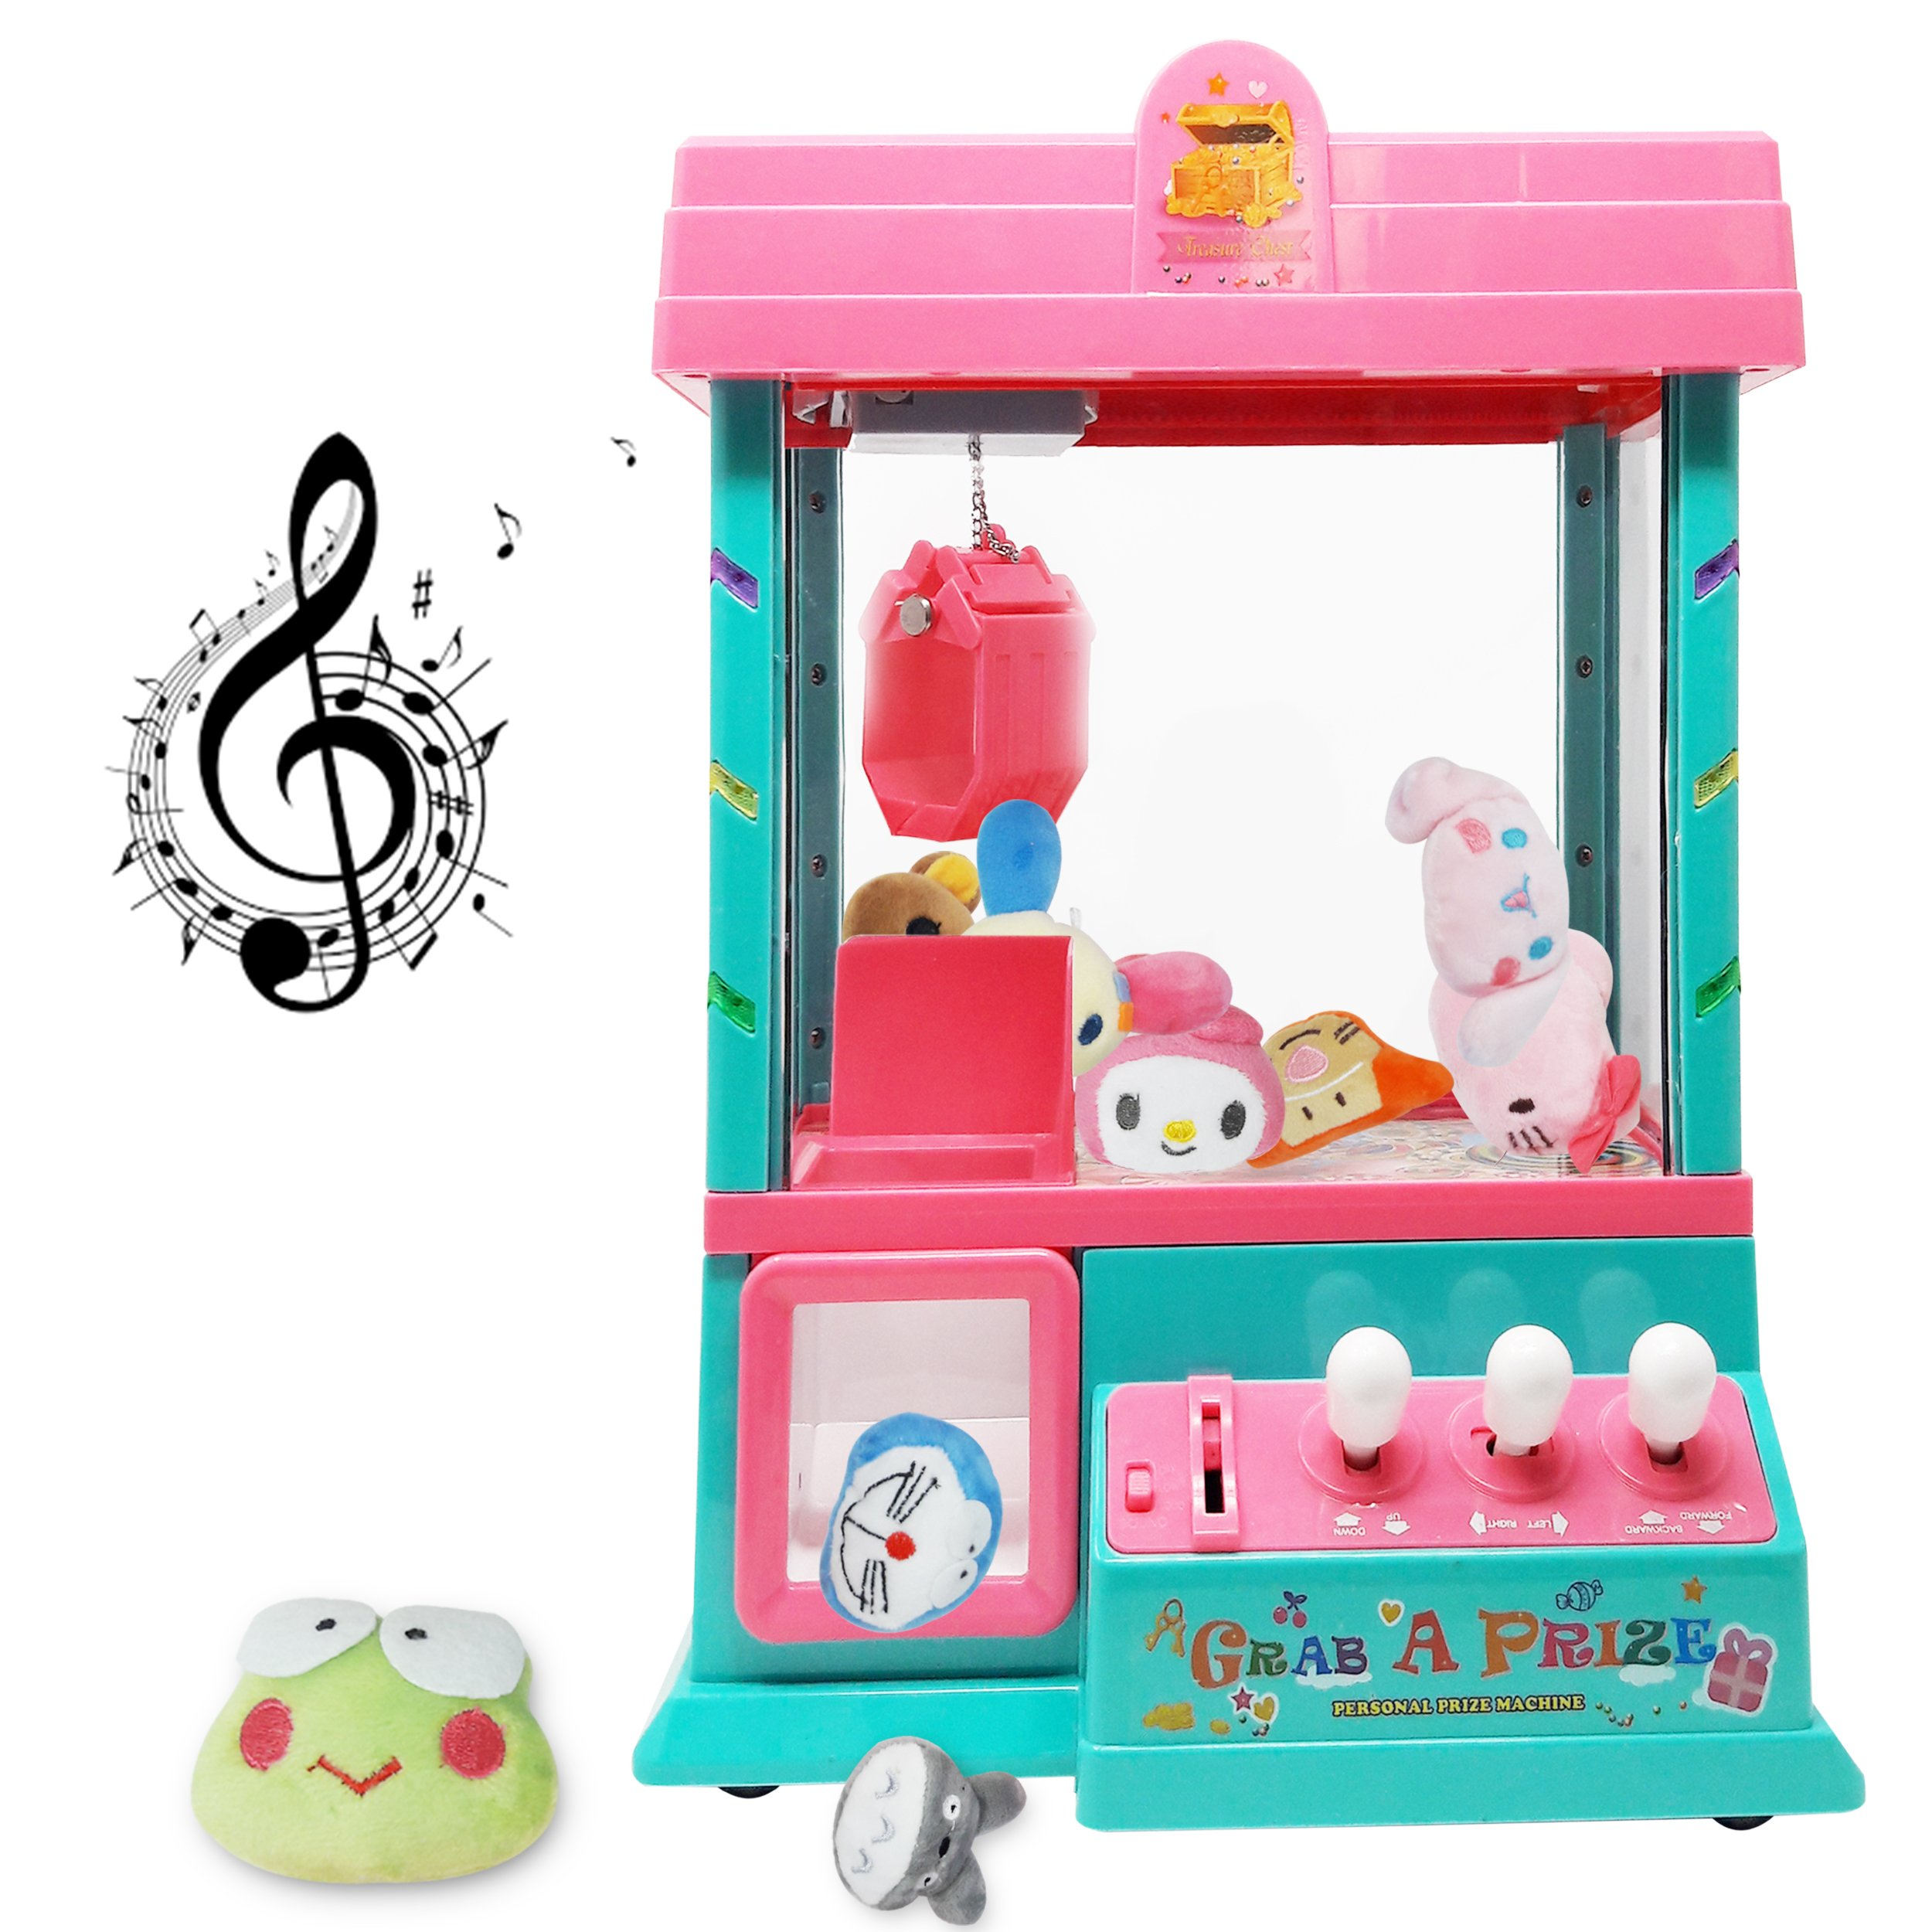 Claw Home Arcade Game Prize Grabber Carnival LED Lights Animation Adjustable Sounds USB Port Cable with 10 Plush Toys and 12 Filled Eggs by TSF TOYS (Image #6)